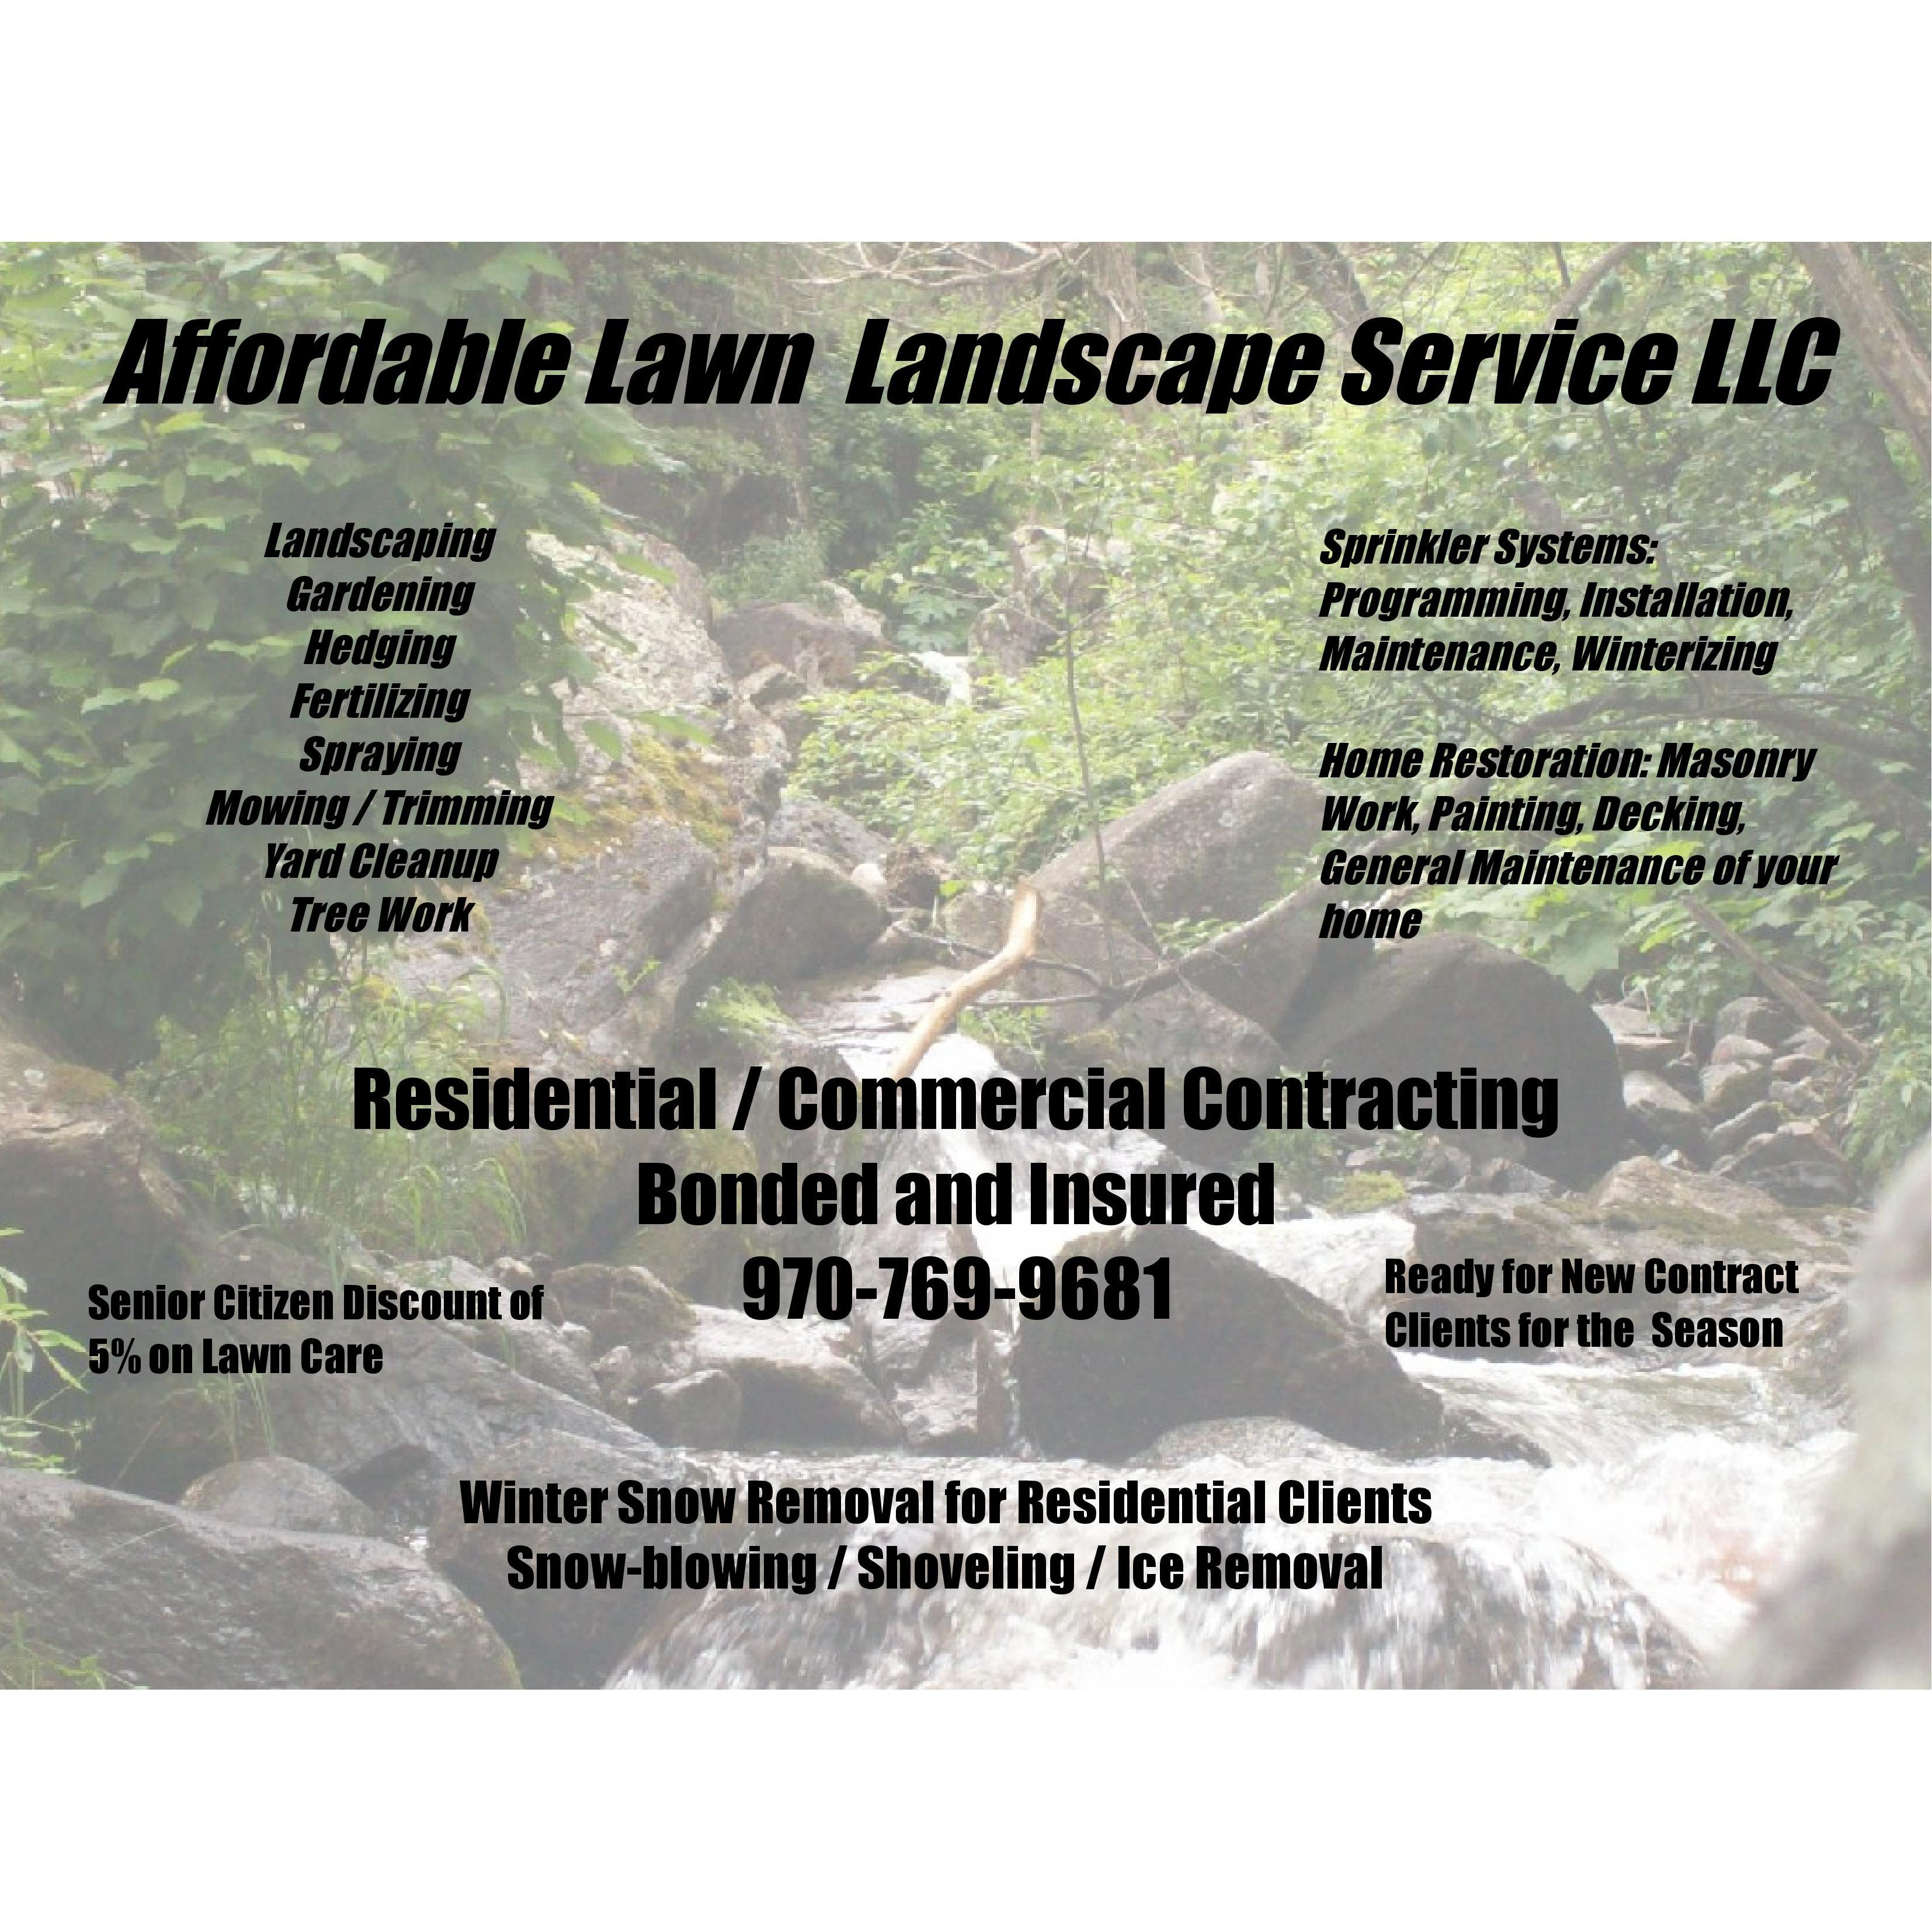 AFFORDABLE LAWN AND LANDSCAPE SERVICE image 5